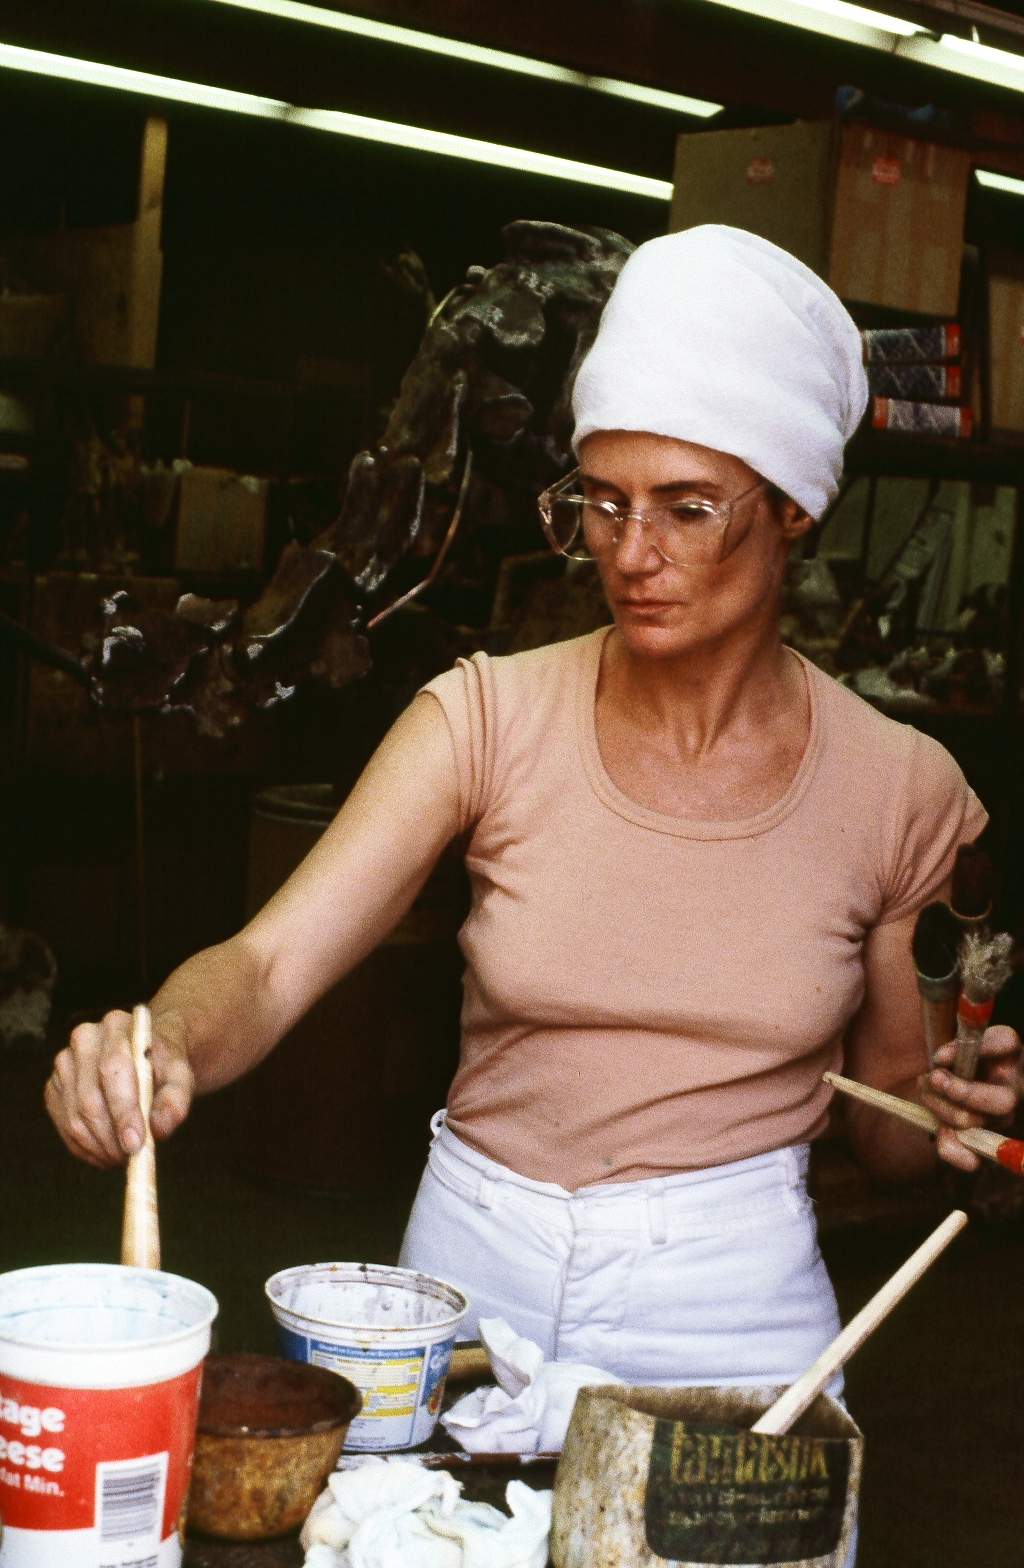 Nancy Graves working on Taxidermy Form, (1979) in 1979 in Patina at the Tallix Beacon